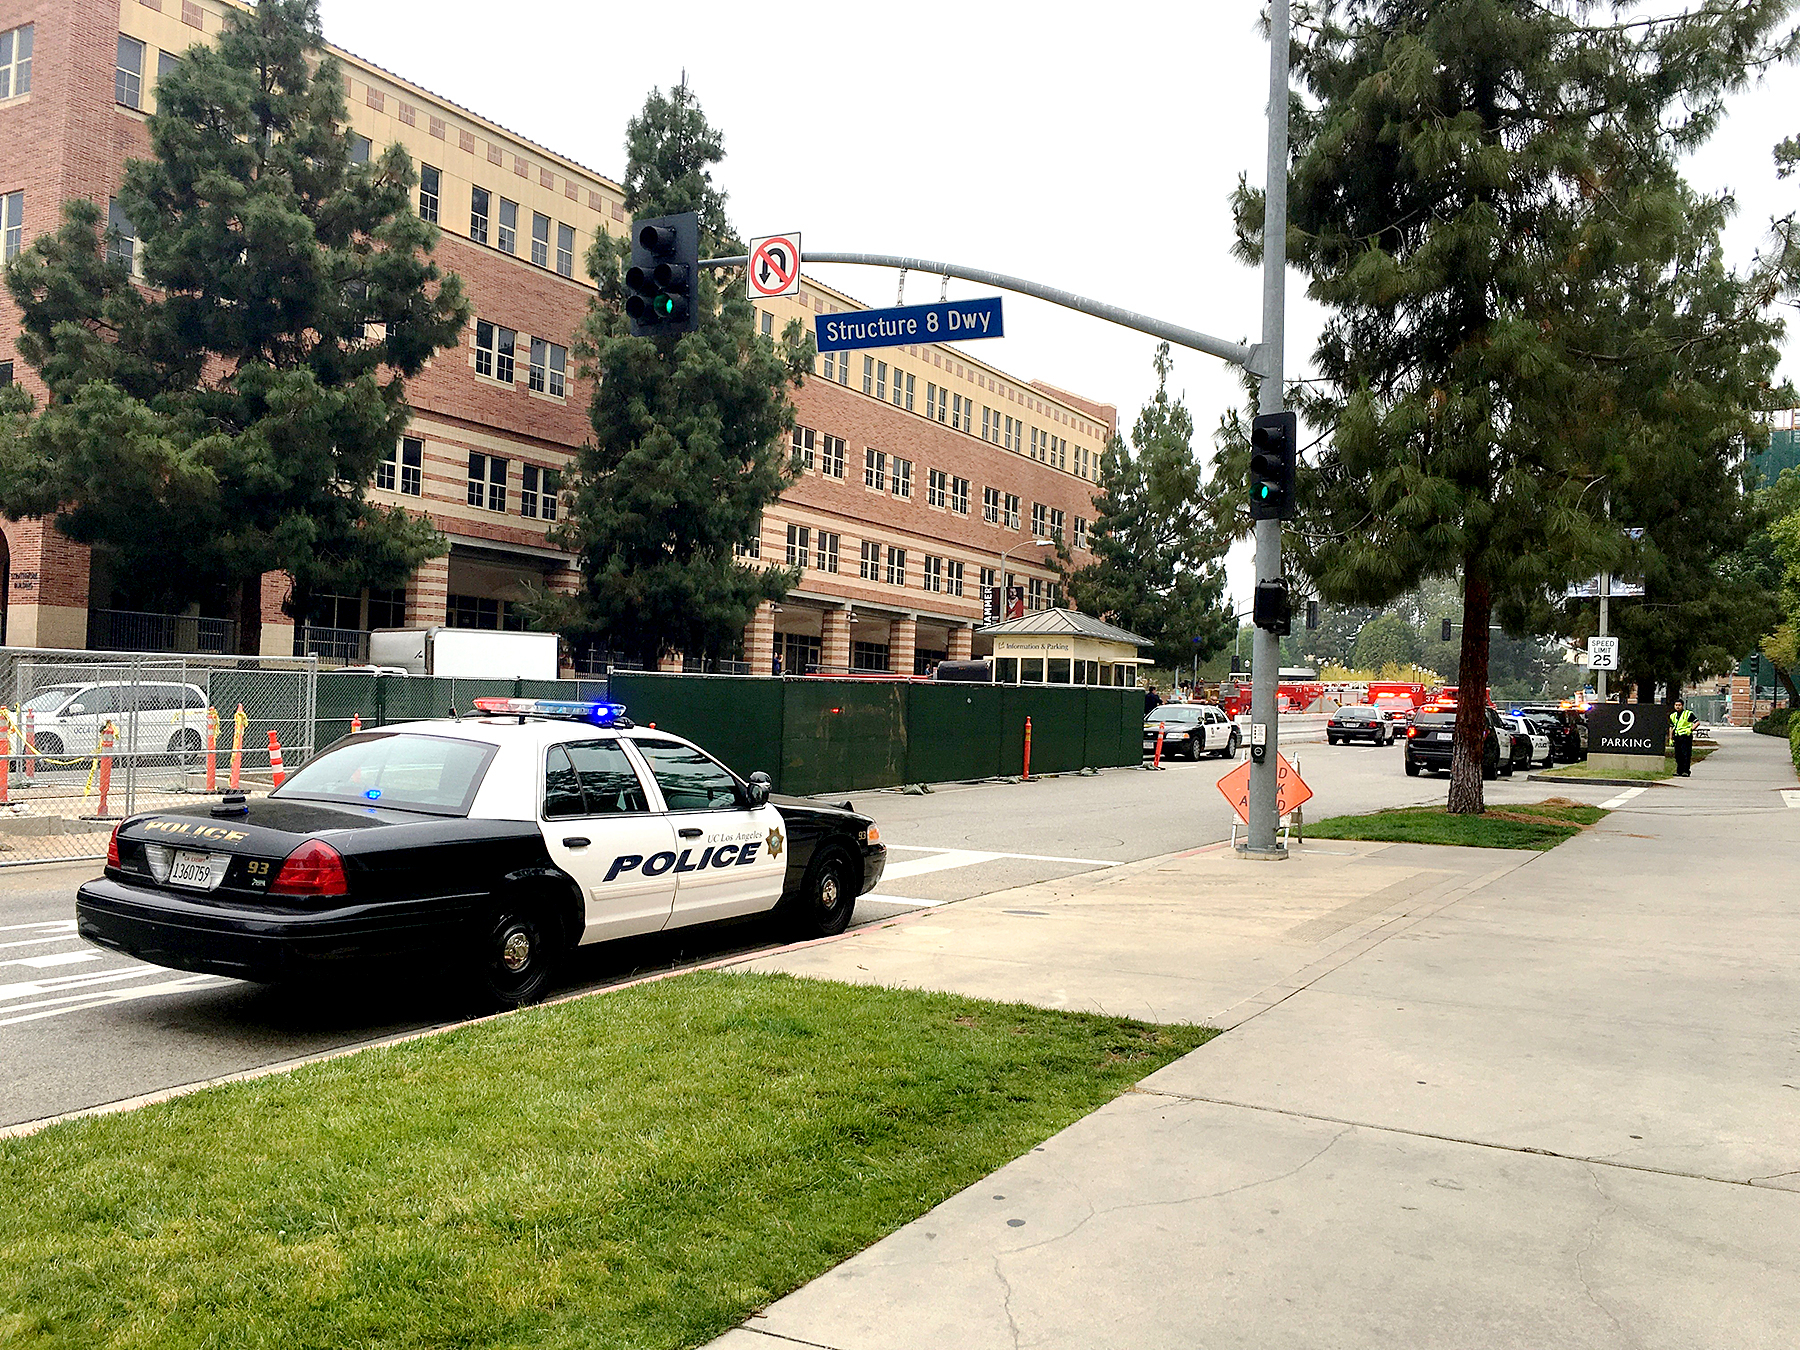 Police gather to begin search buildings on the UCLA campus as two people were killed in a shooting at UCLA on Wednesday morning, on June 1, 2016 in Los Angeles, California.